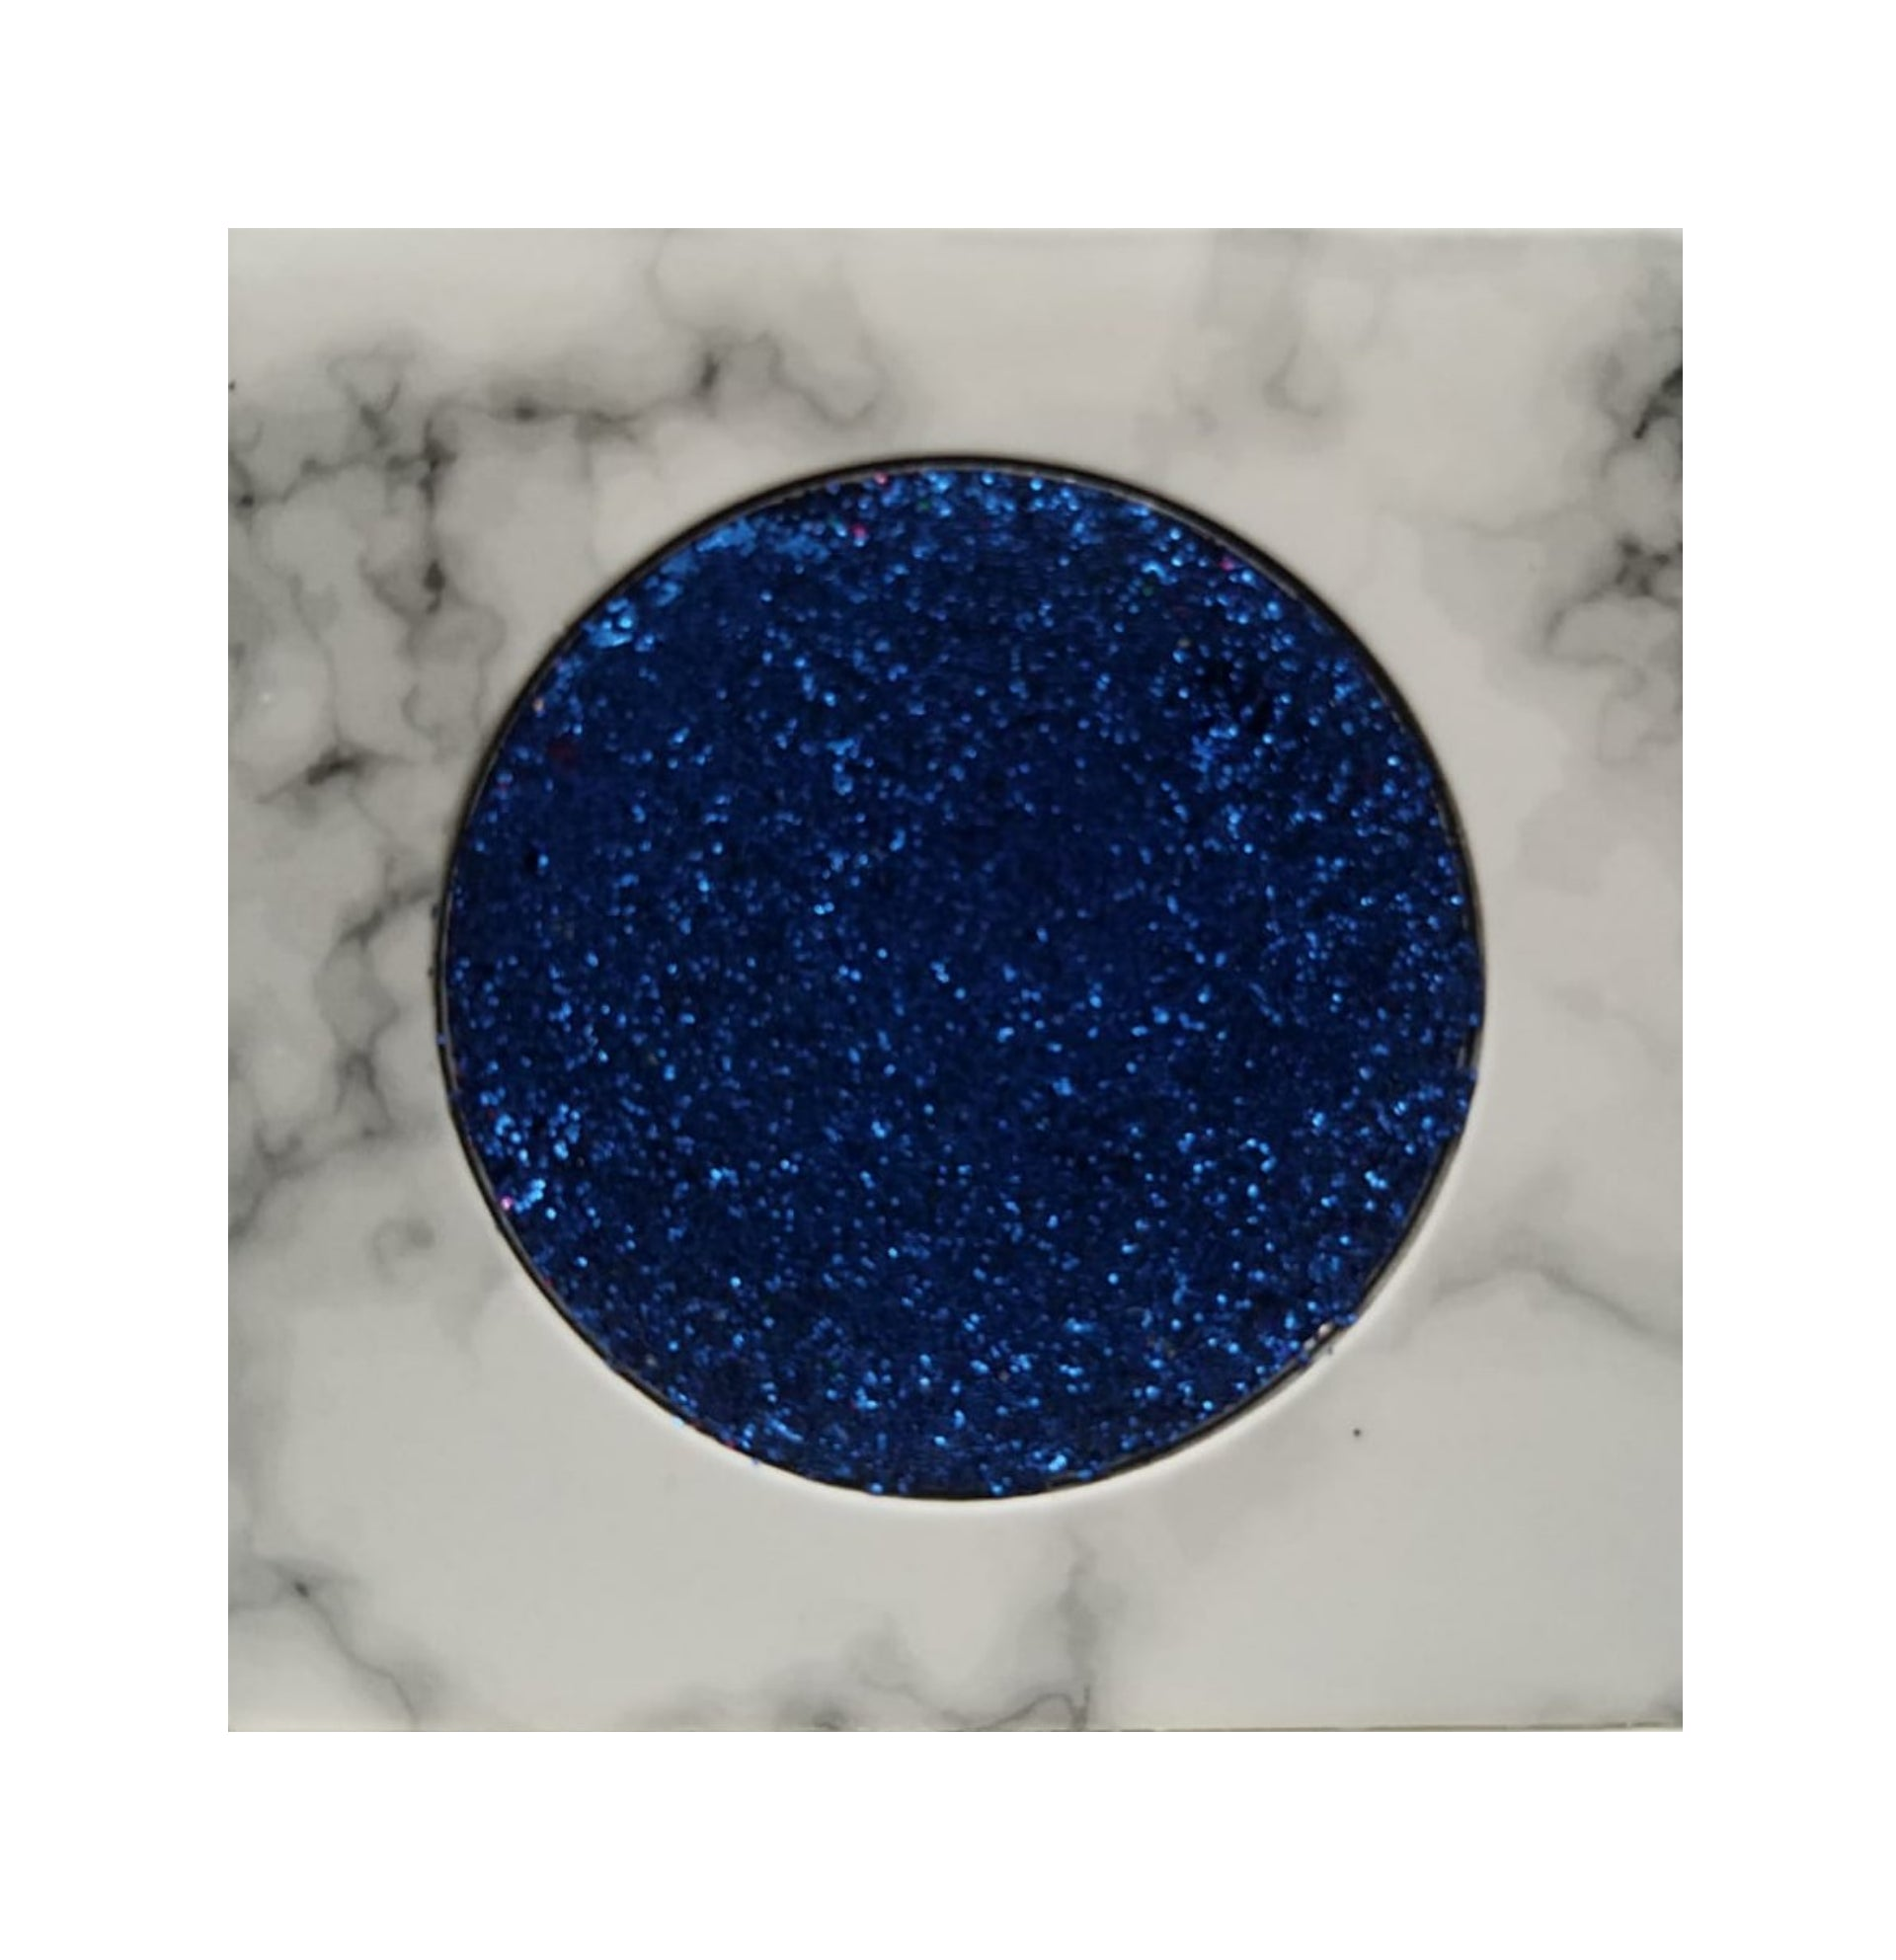 Electric Blue Glitter Single Eyeshadow